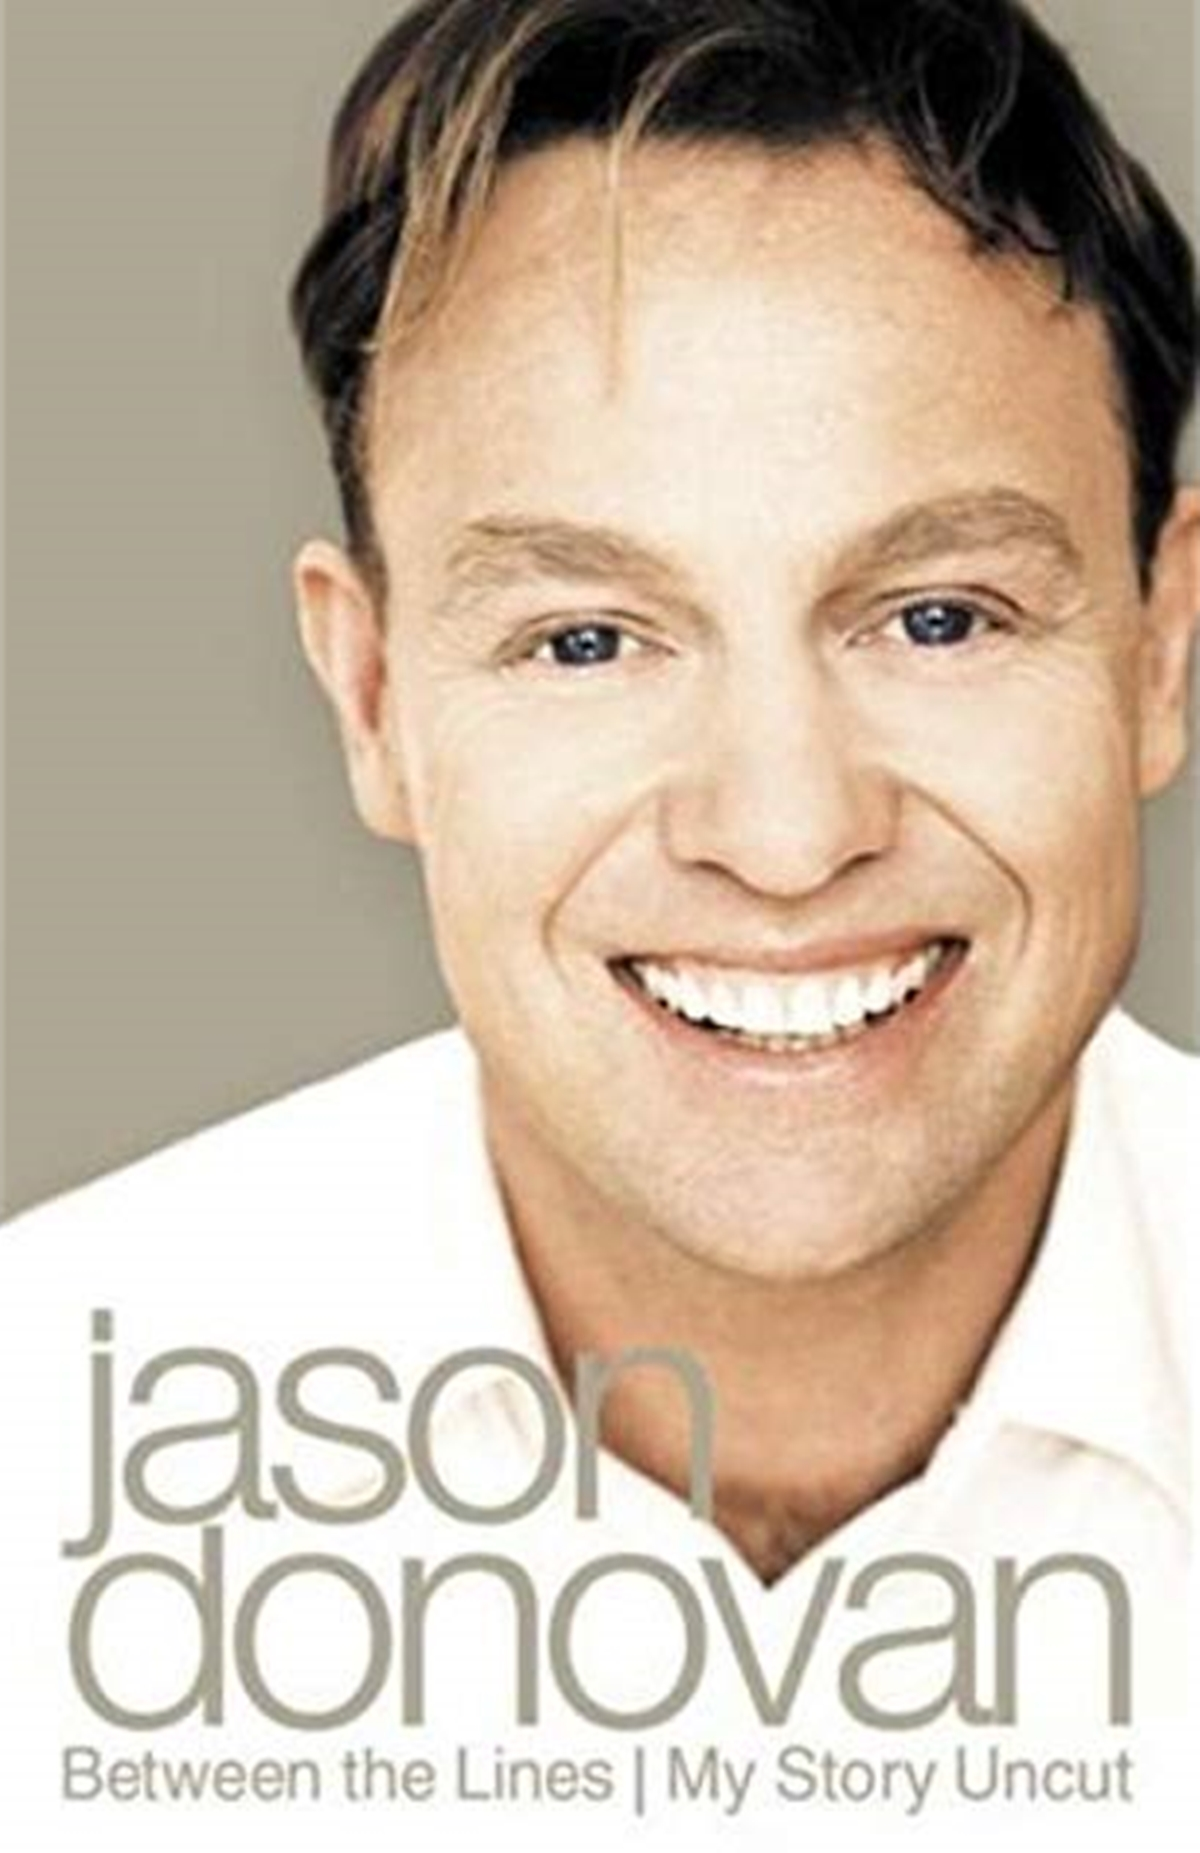 8 33 10 Things You Probably Didn't Know About Jason Donovan